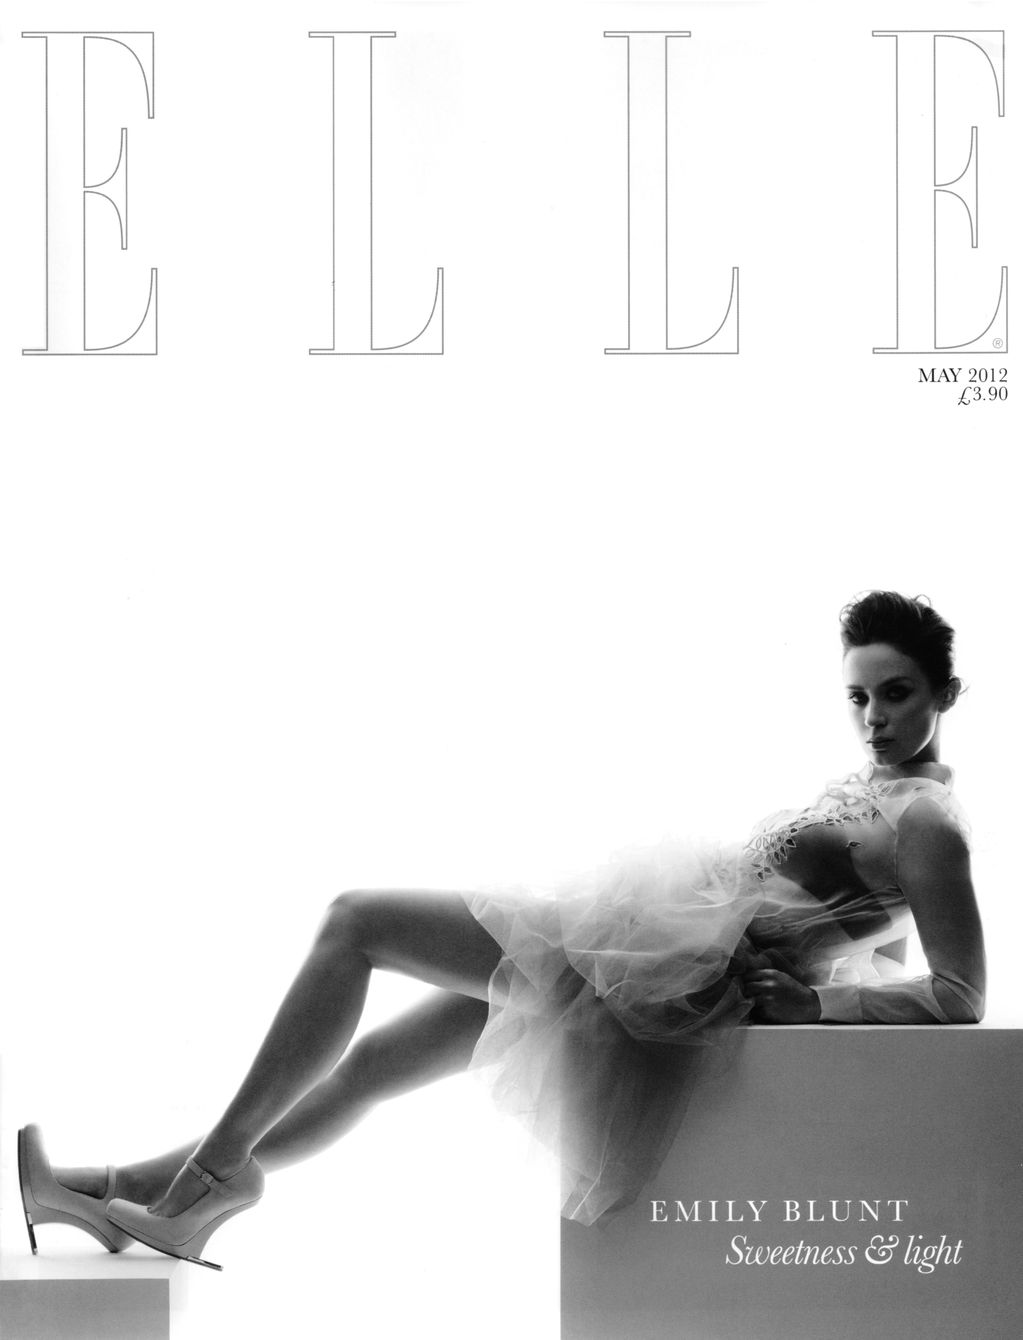 UK Elle May 2012: Emily Blunt by Thomas Schenk